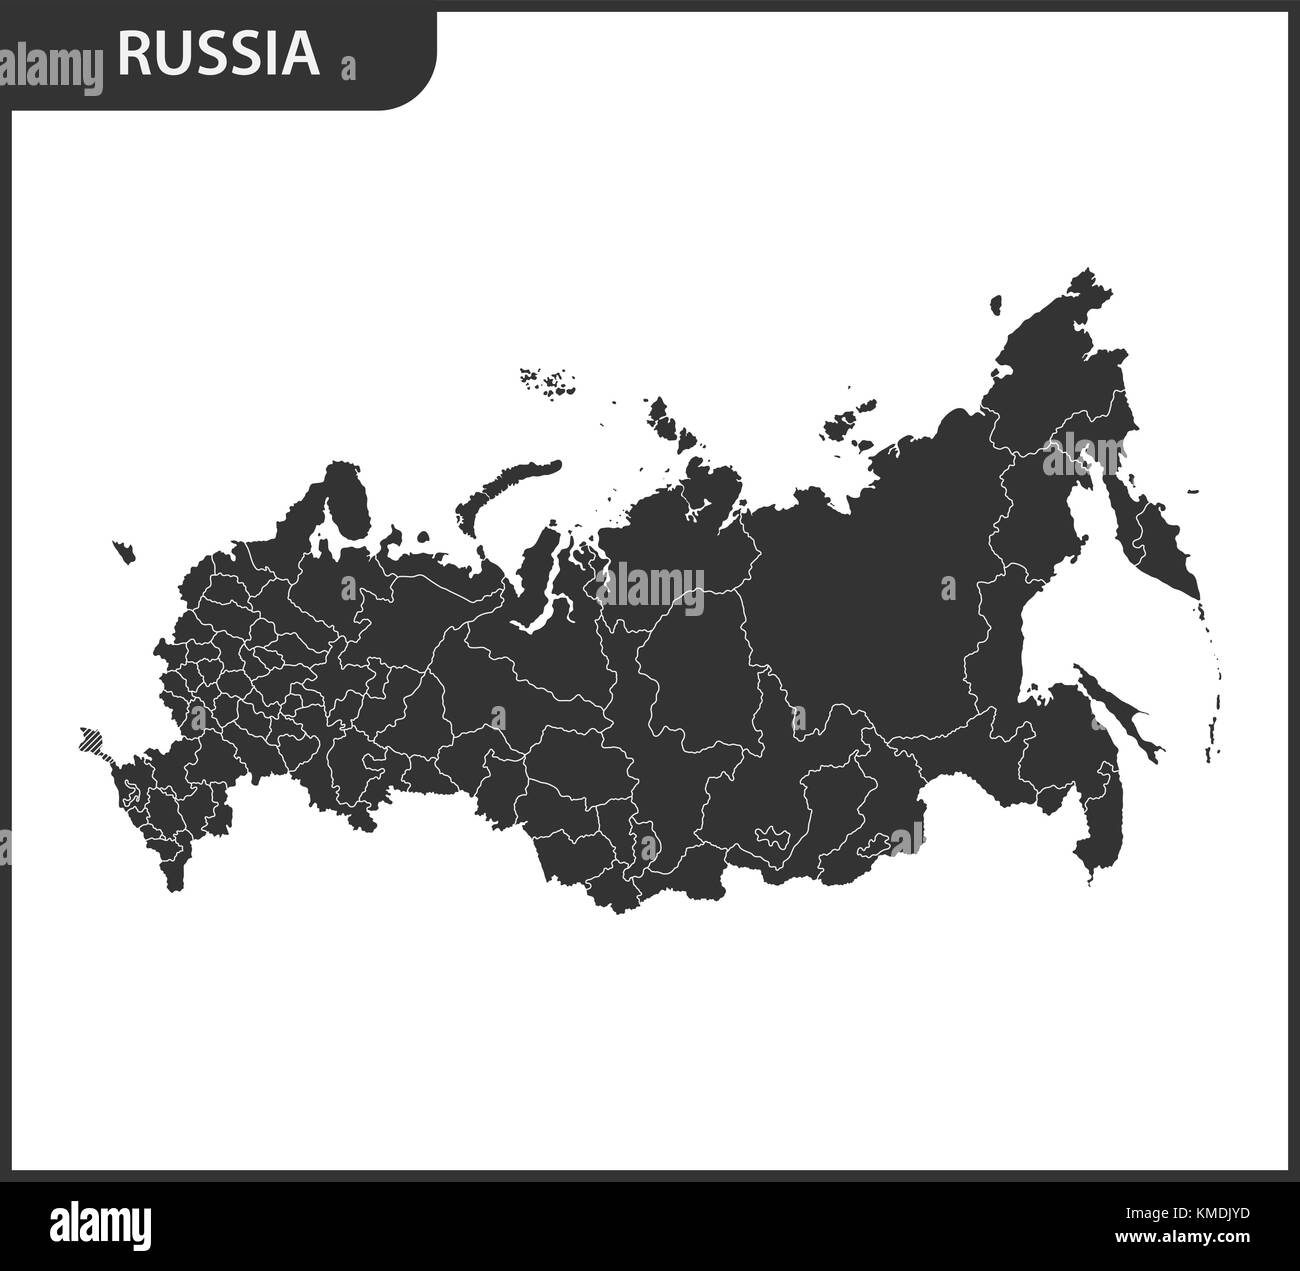 Detailed map of Russia with regions. The Russian Federation with the Crimea as a disputed territory - Stock Image